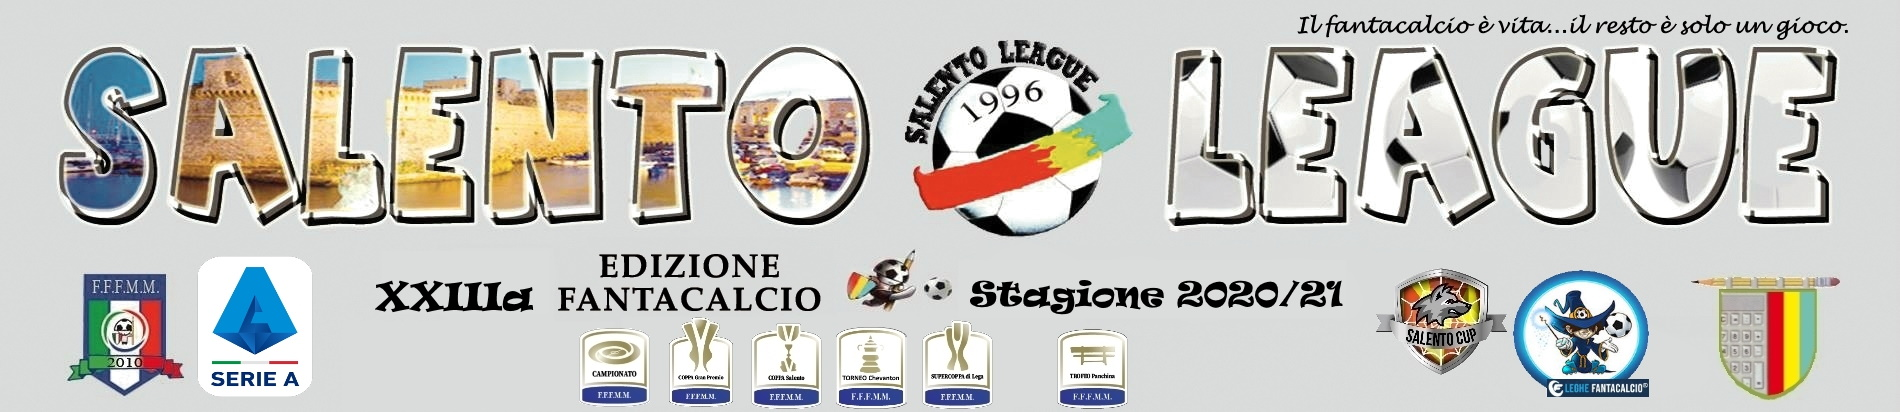 Salento League - Fantamagicmania